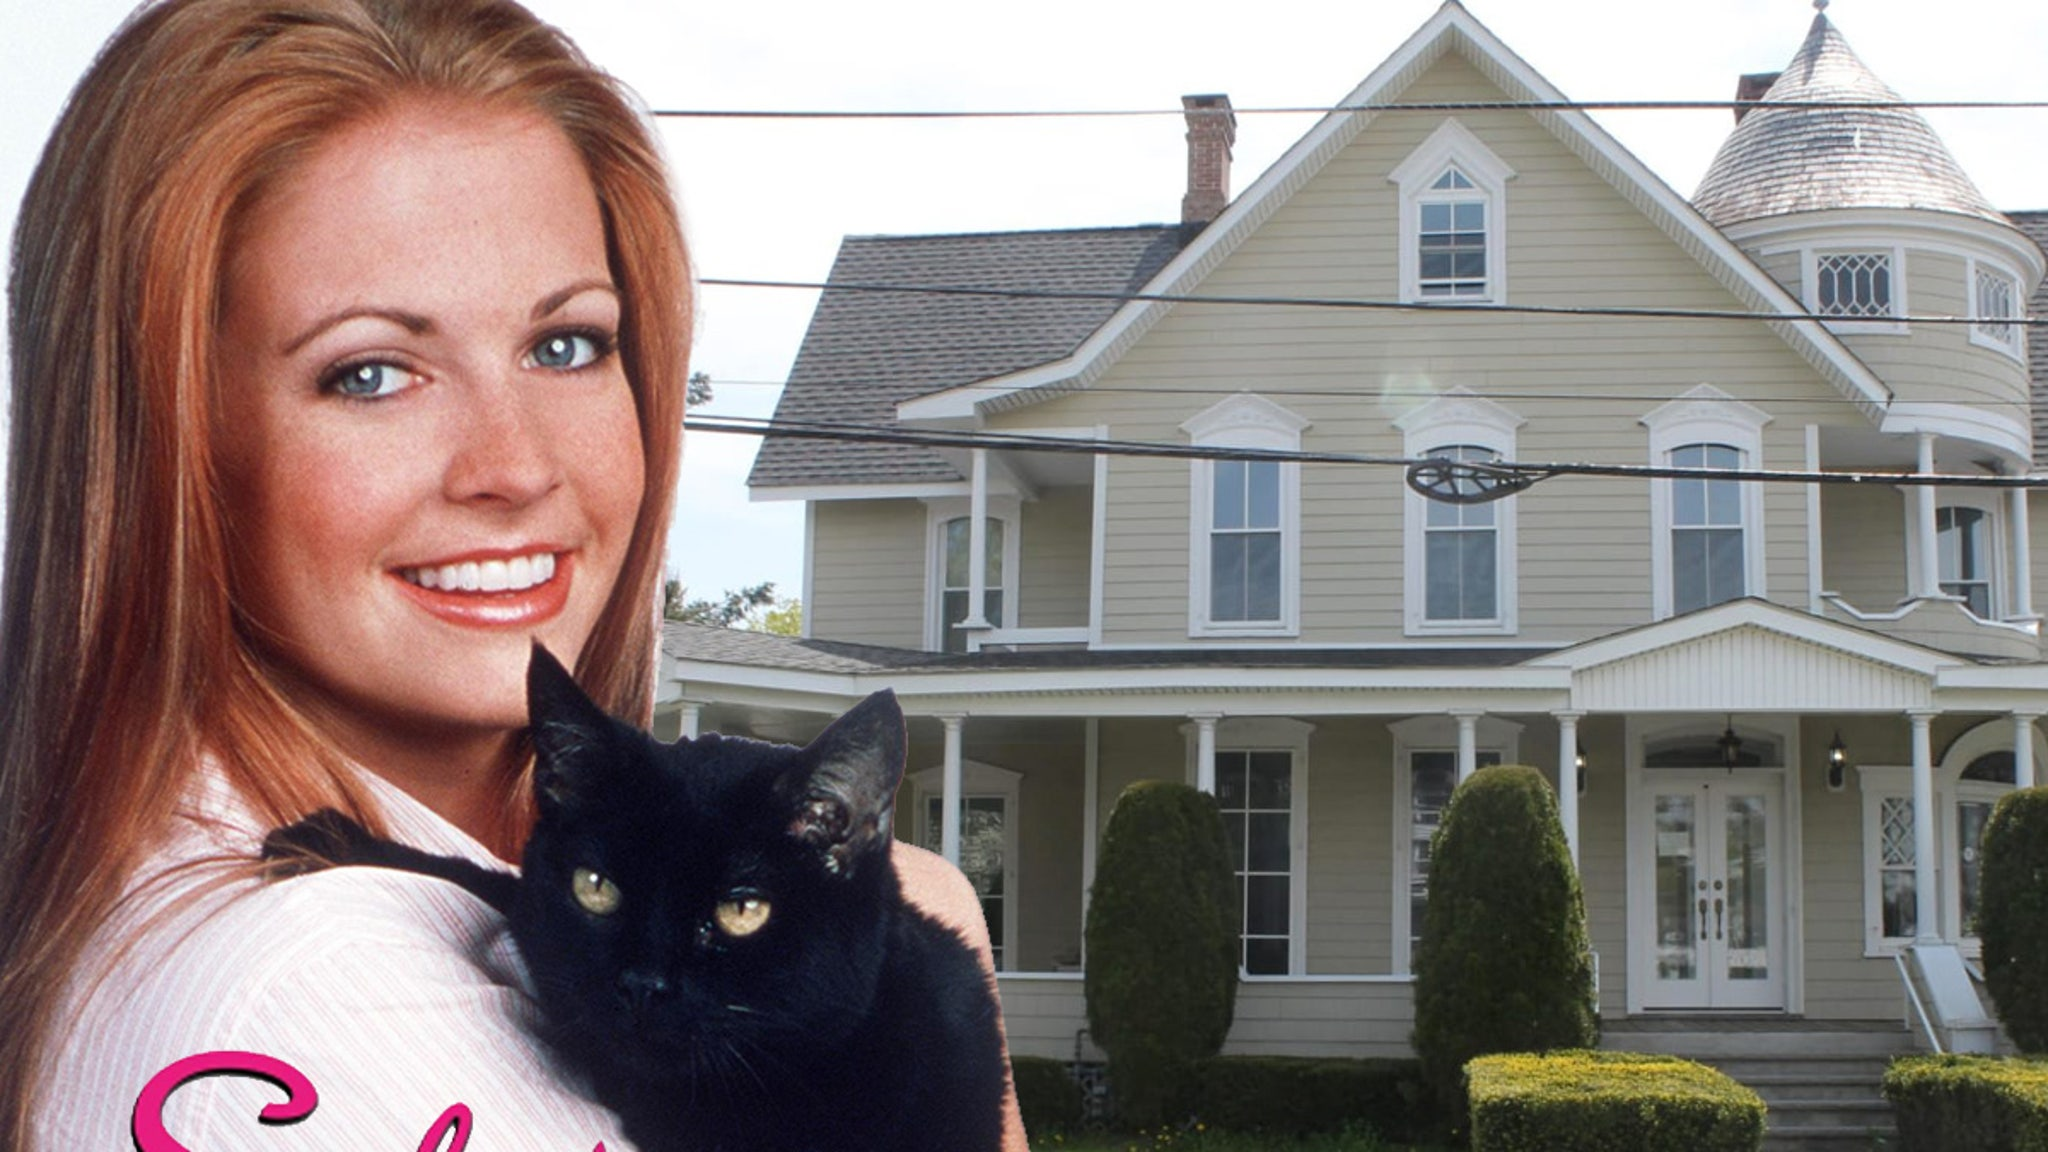 'Sabrina the Teenage Witch' House from Show for Sale at Nearly $2 Mil thumbnail